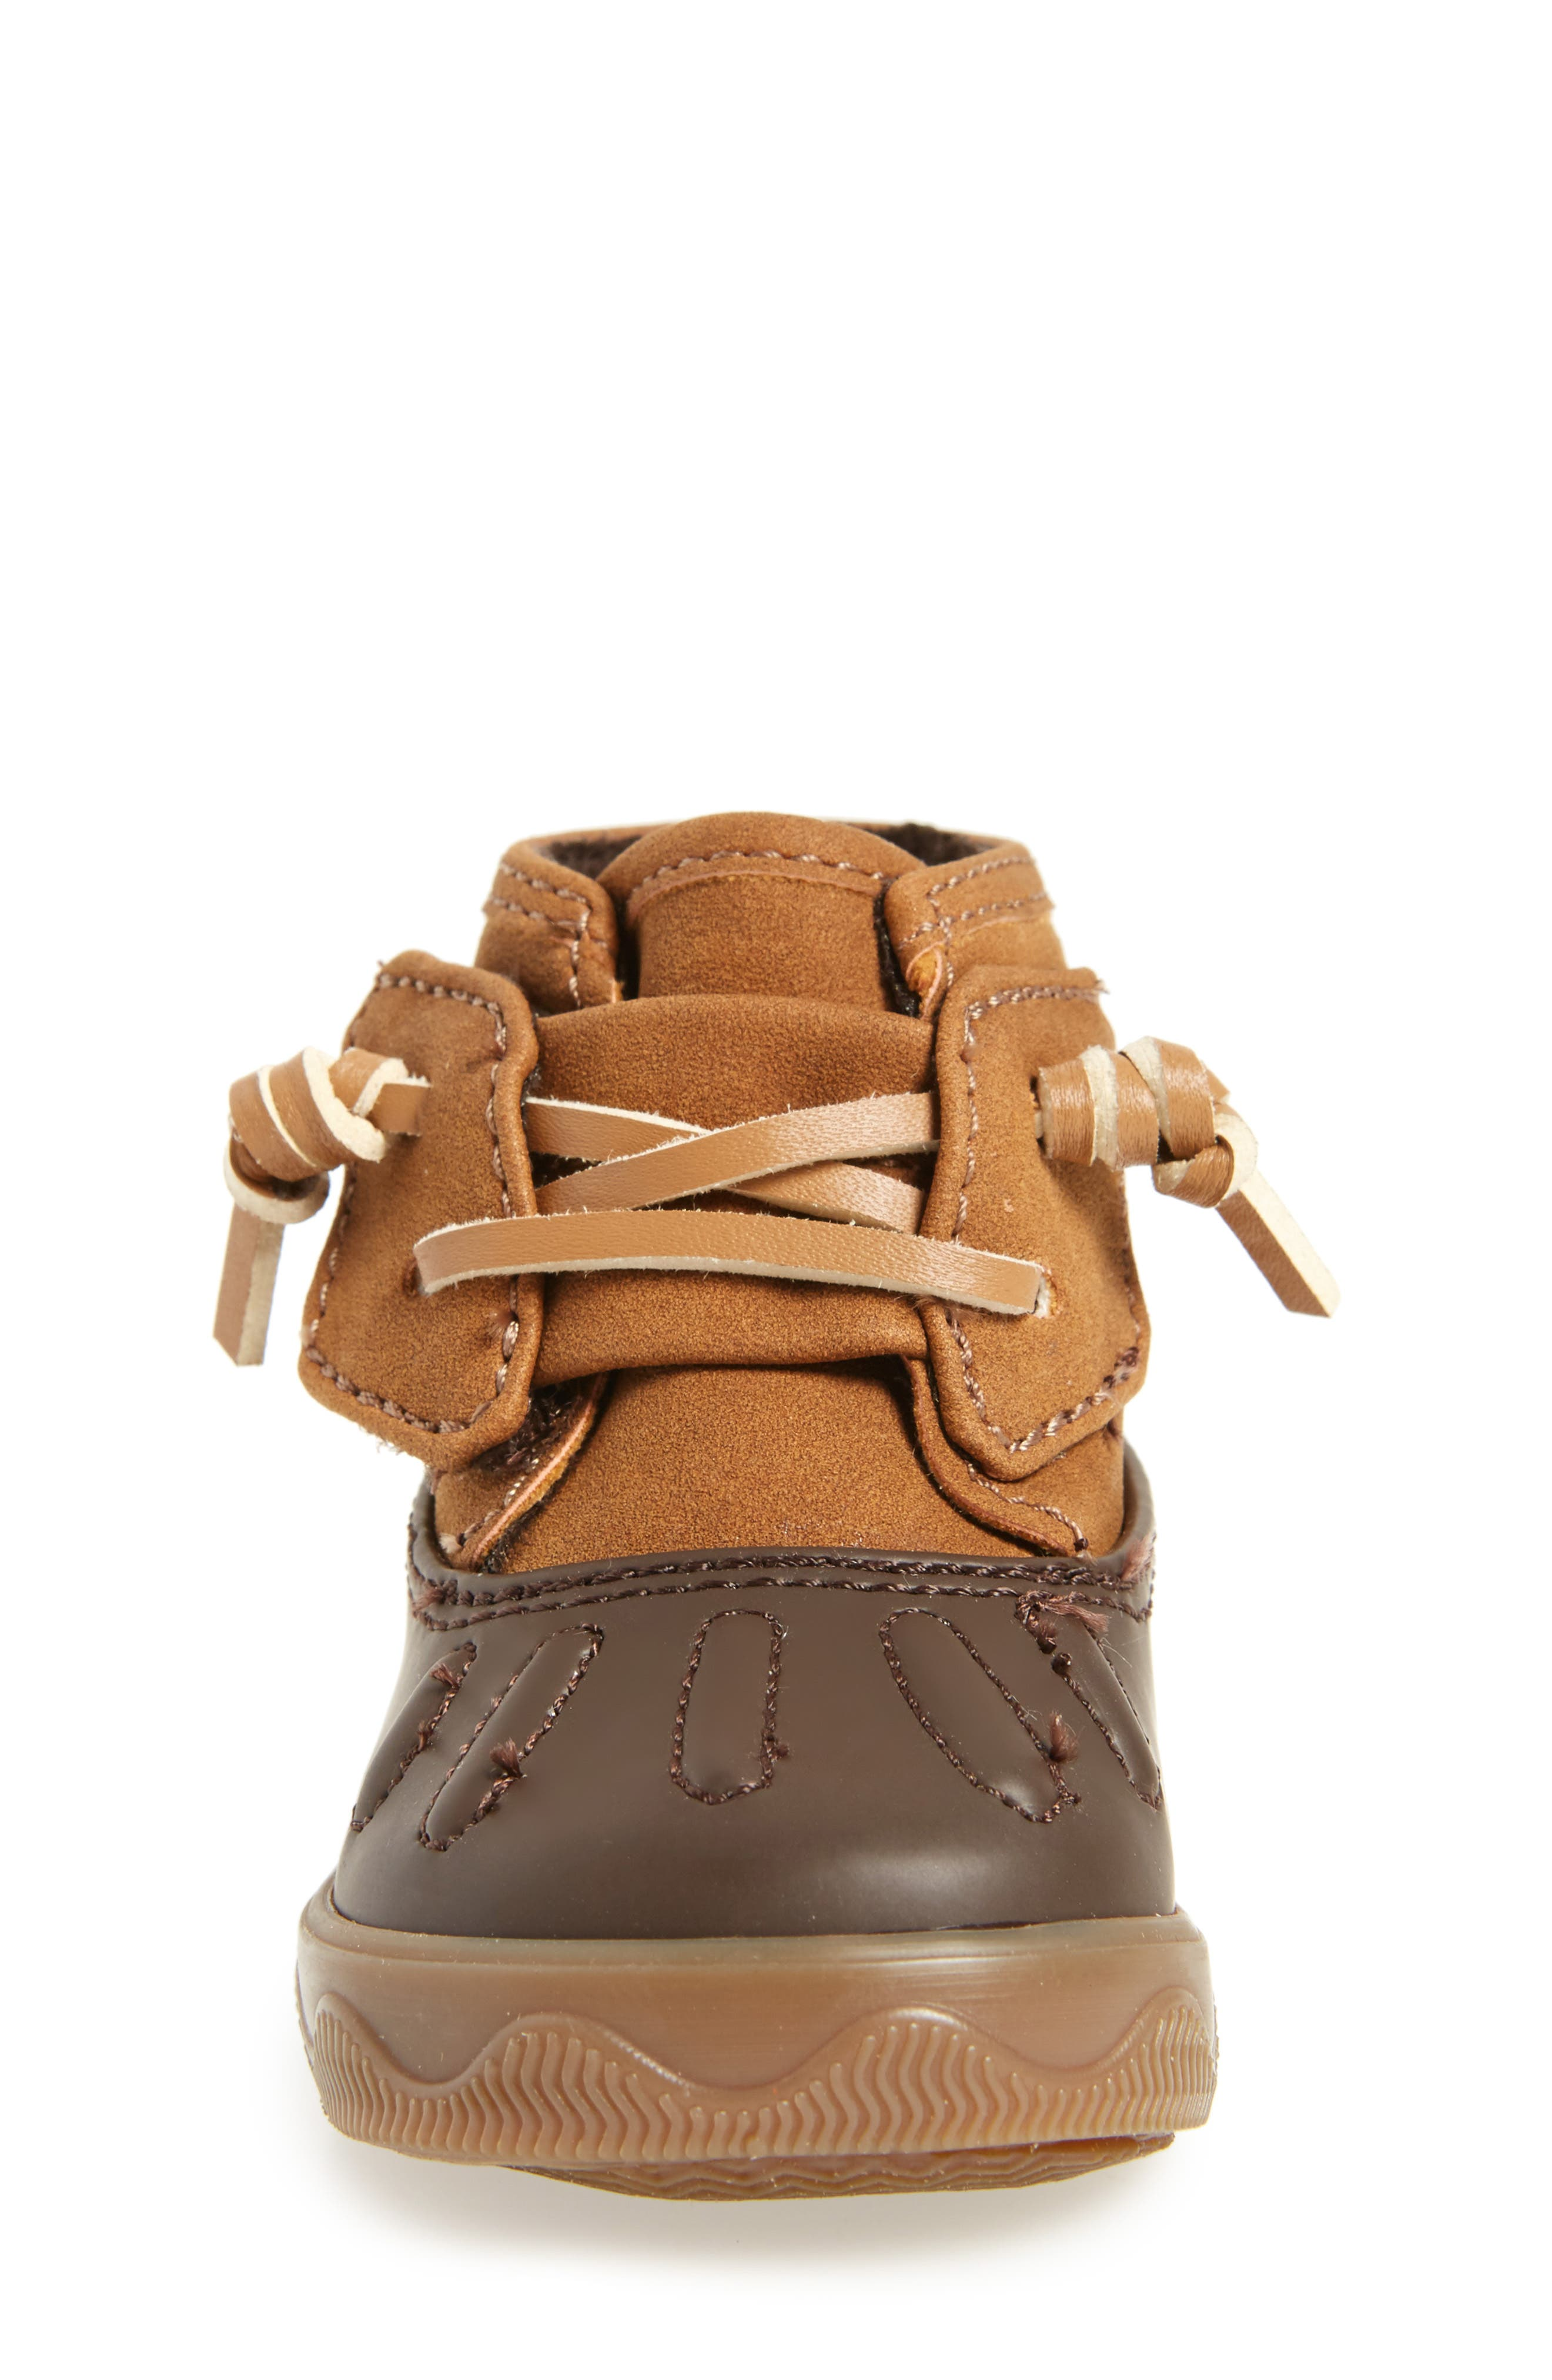 Sperry Icestorm Crib Duck Bootie,                             Alternate thumbnail 4, color,                             TAN/ BROWN